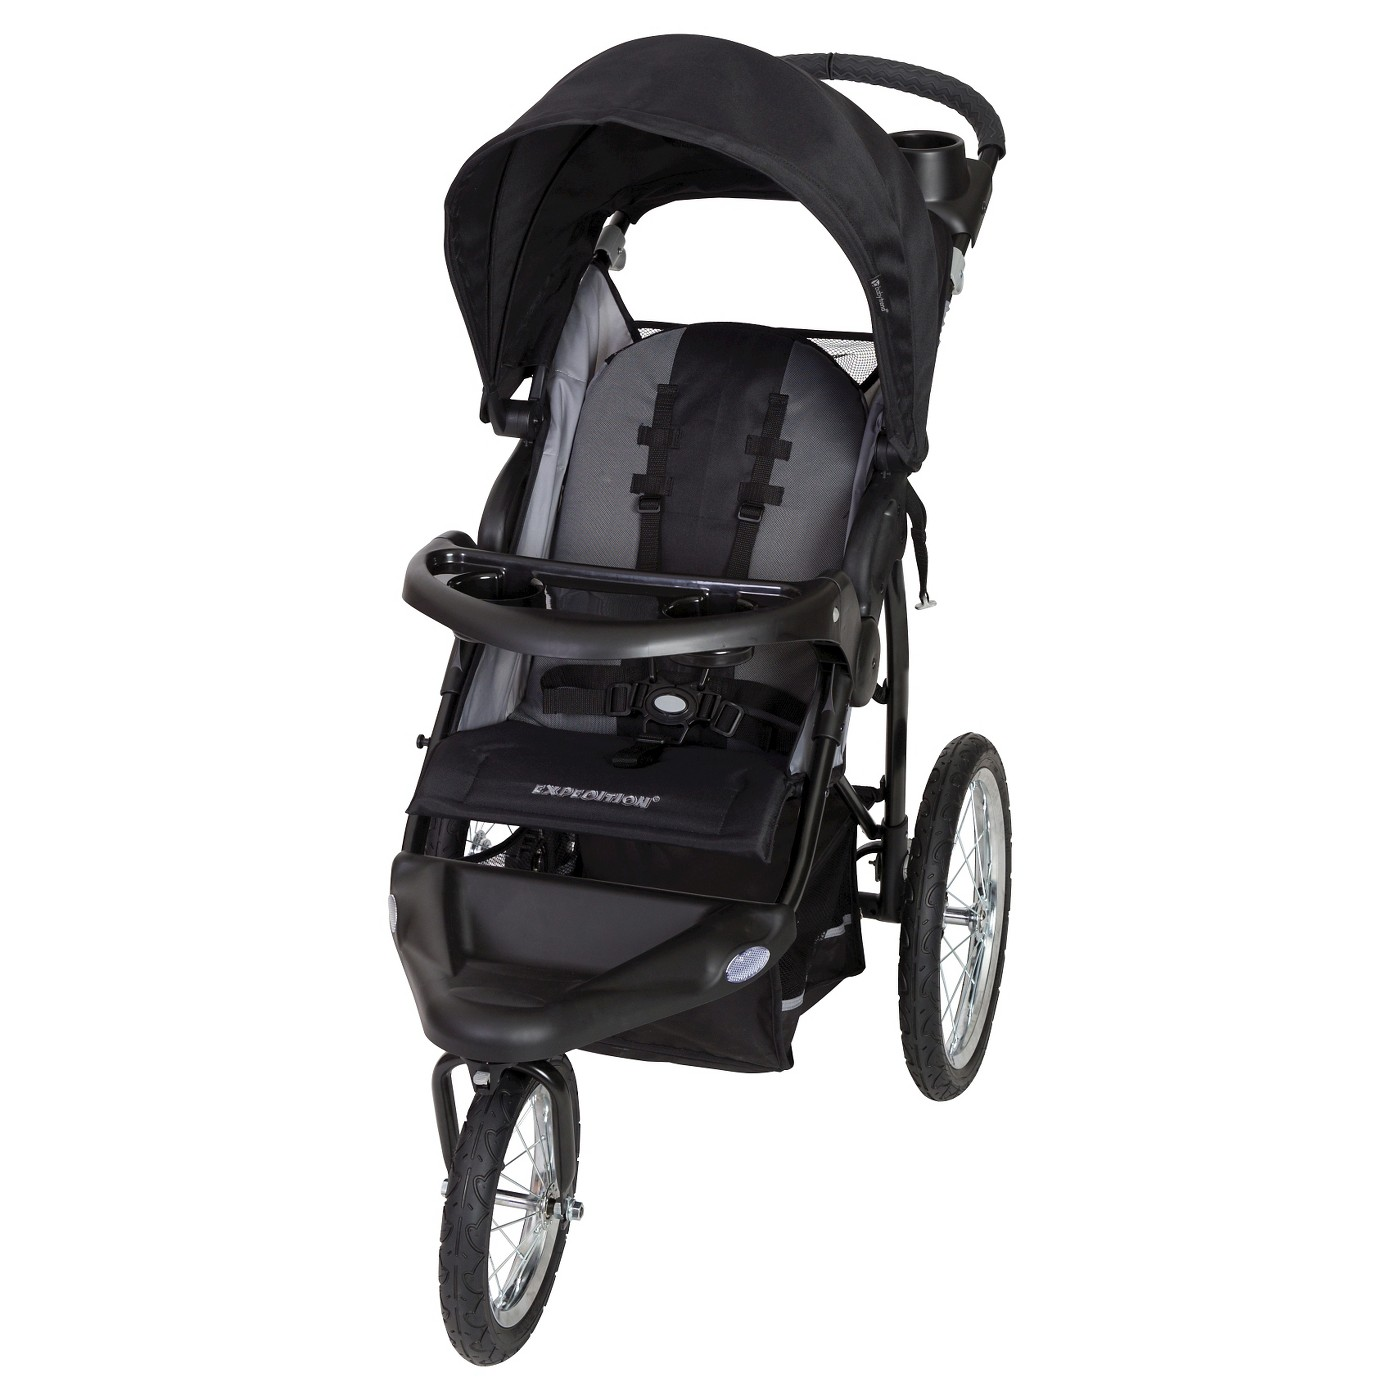 Baby Trend Expedition RG Jogger Stroller - image 1 of 6